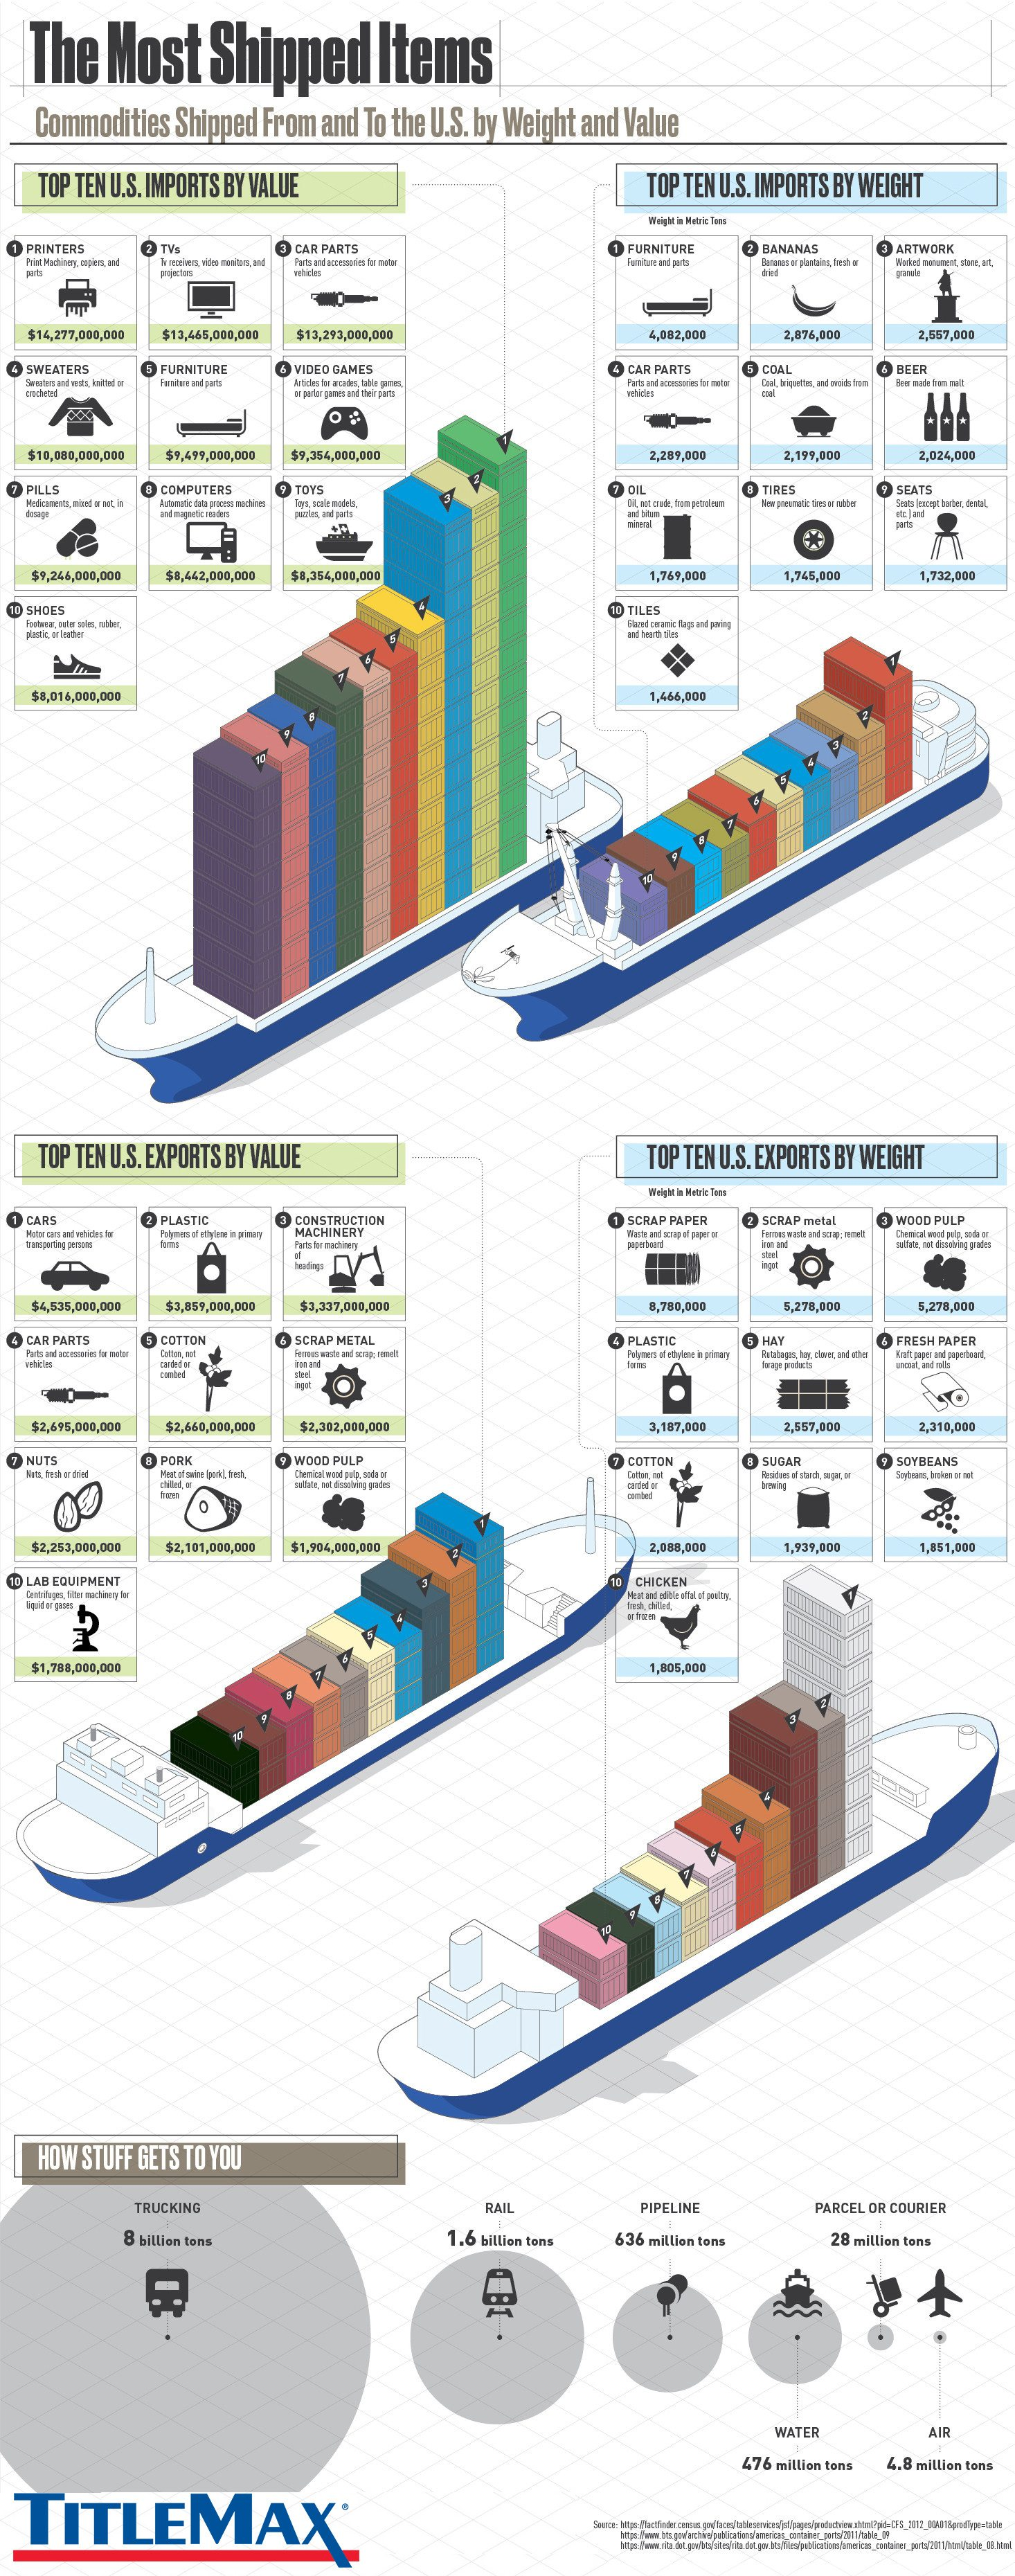 The Most Shipped Items to and From the U.S. by Weight and Value